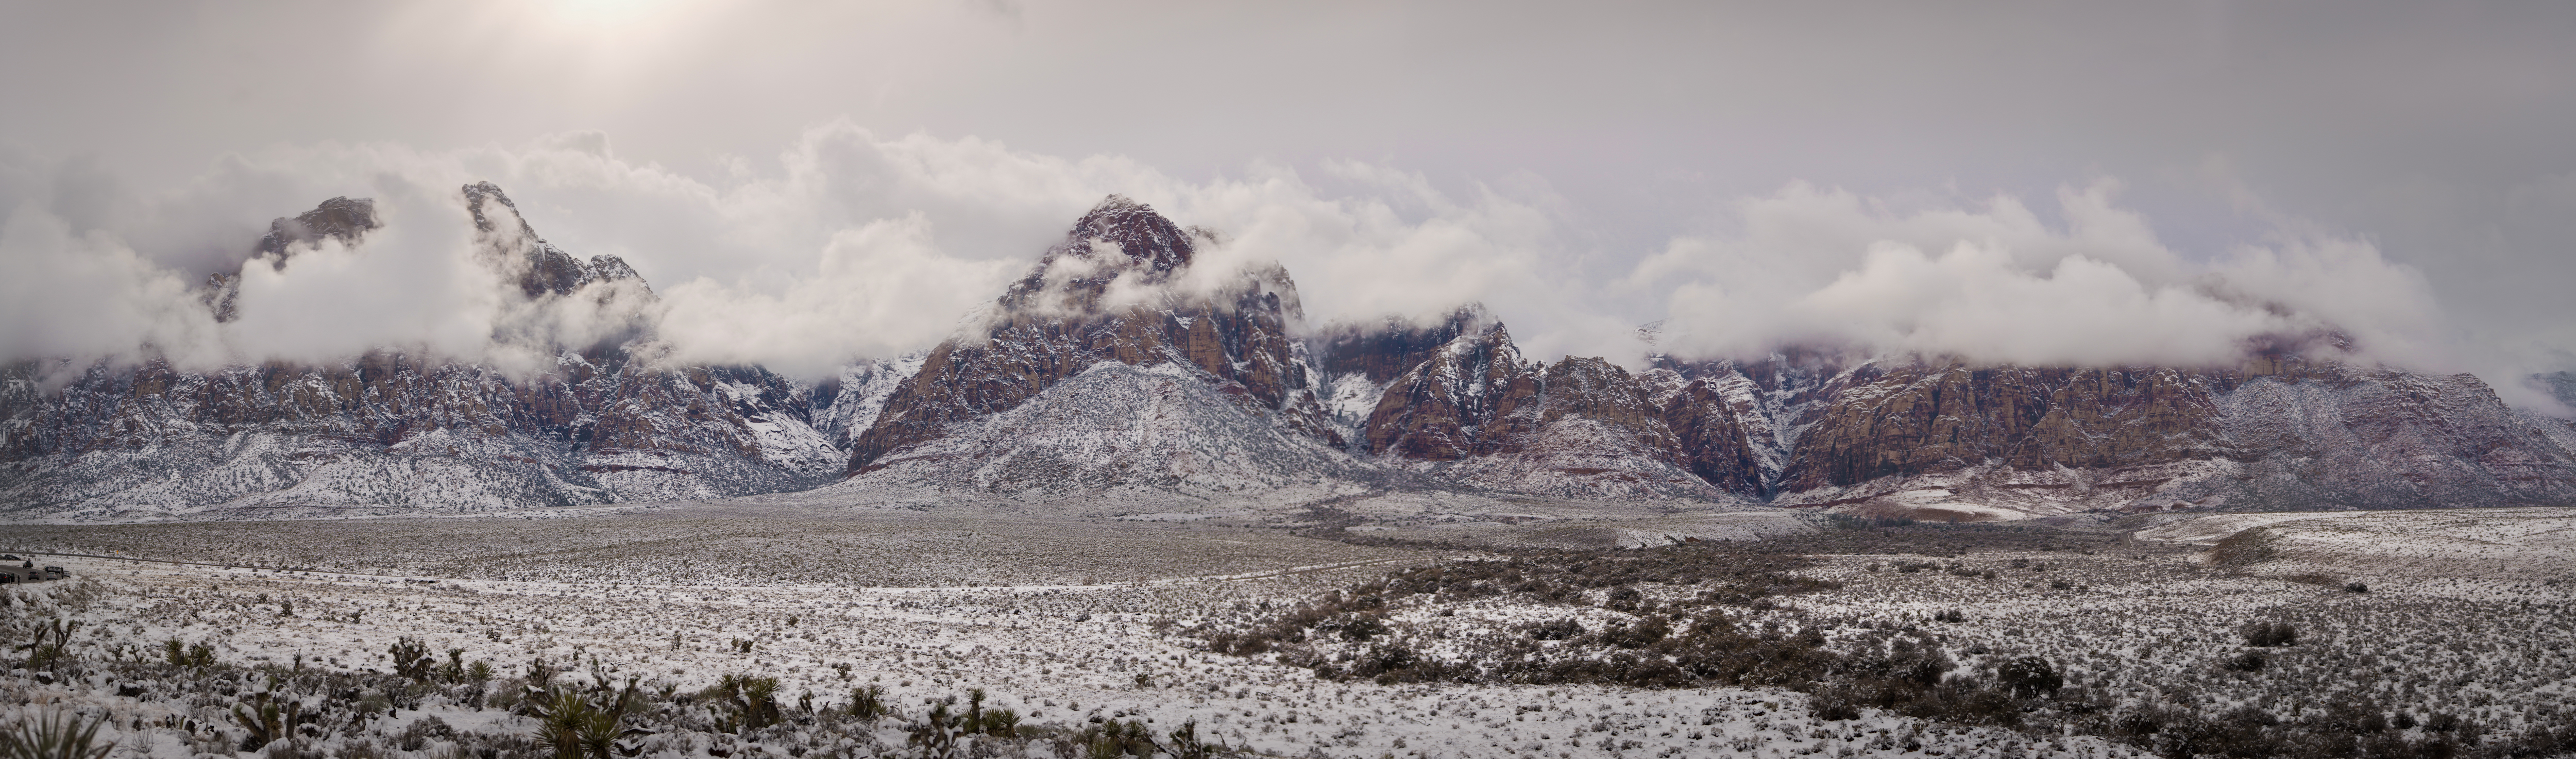 Red Rock Canyon - Winter Storm